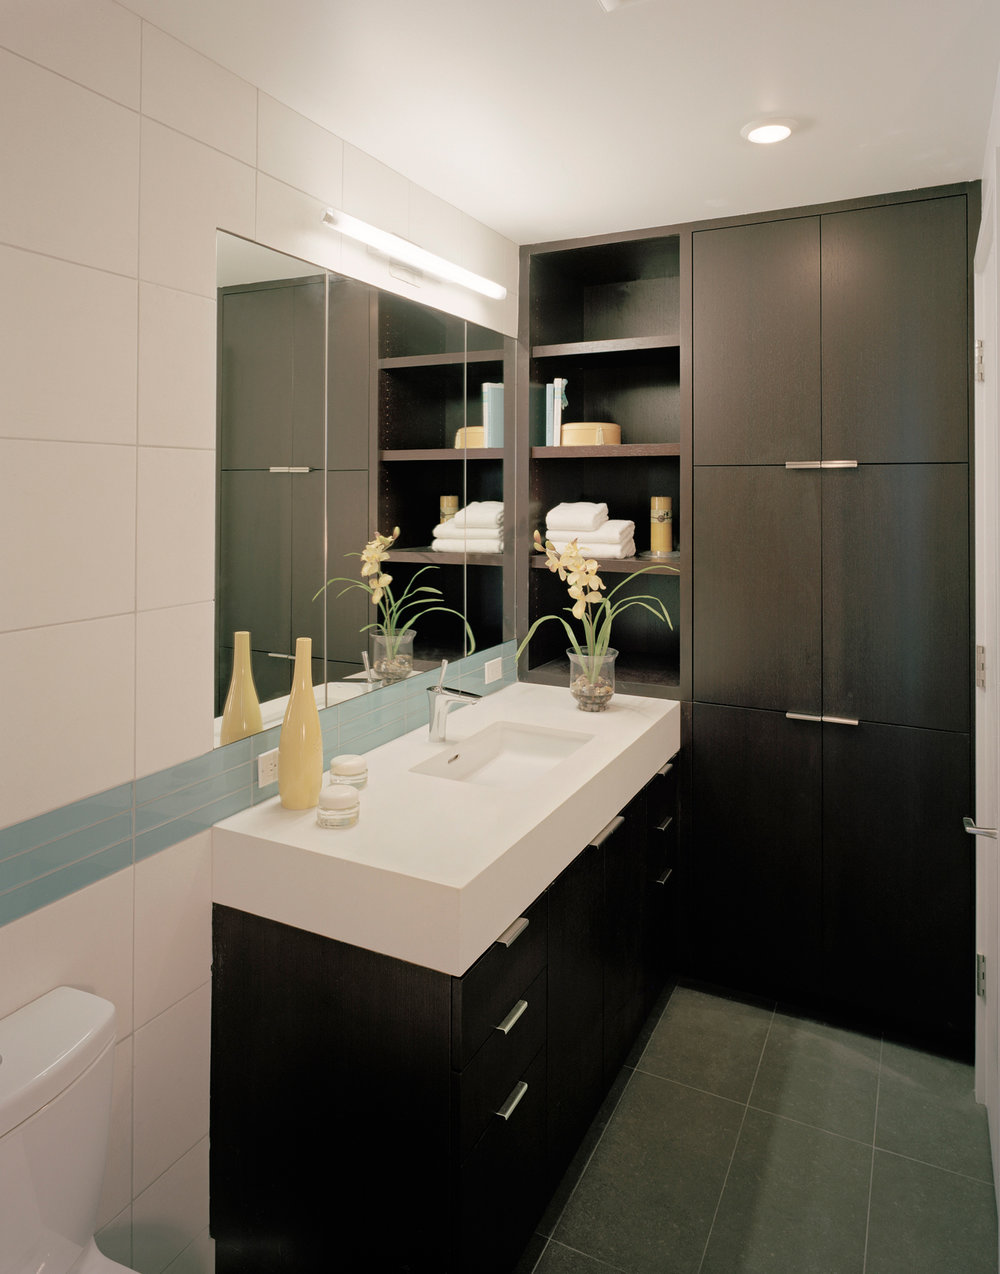 guest bathroom in new modern home.jpg